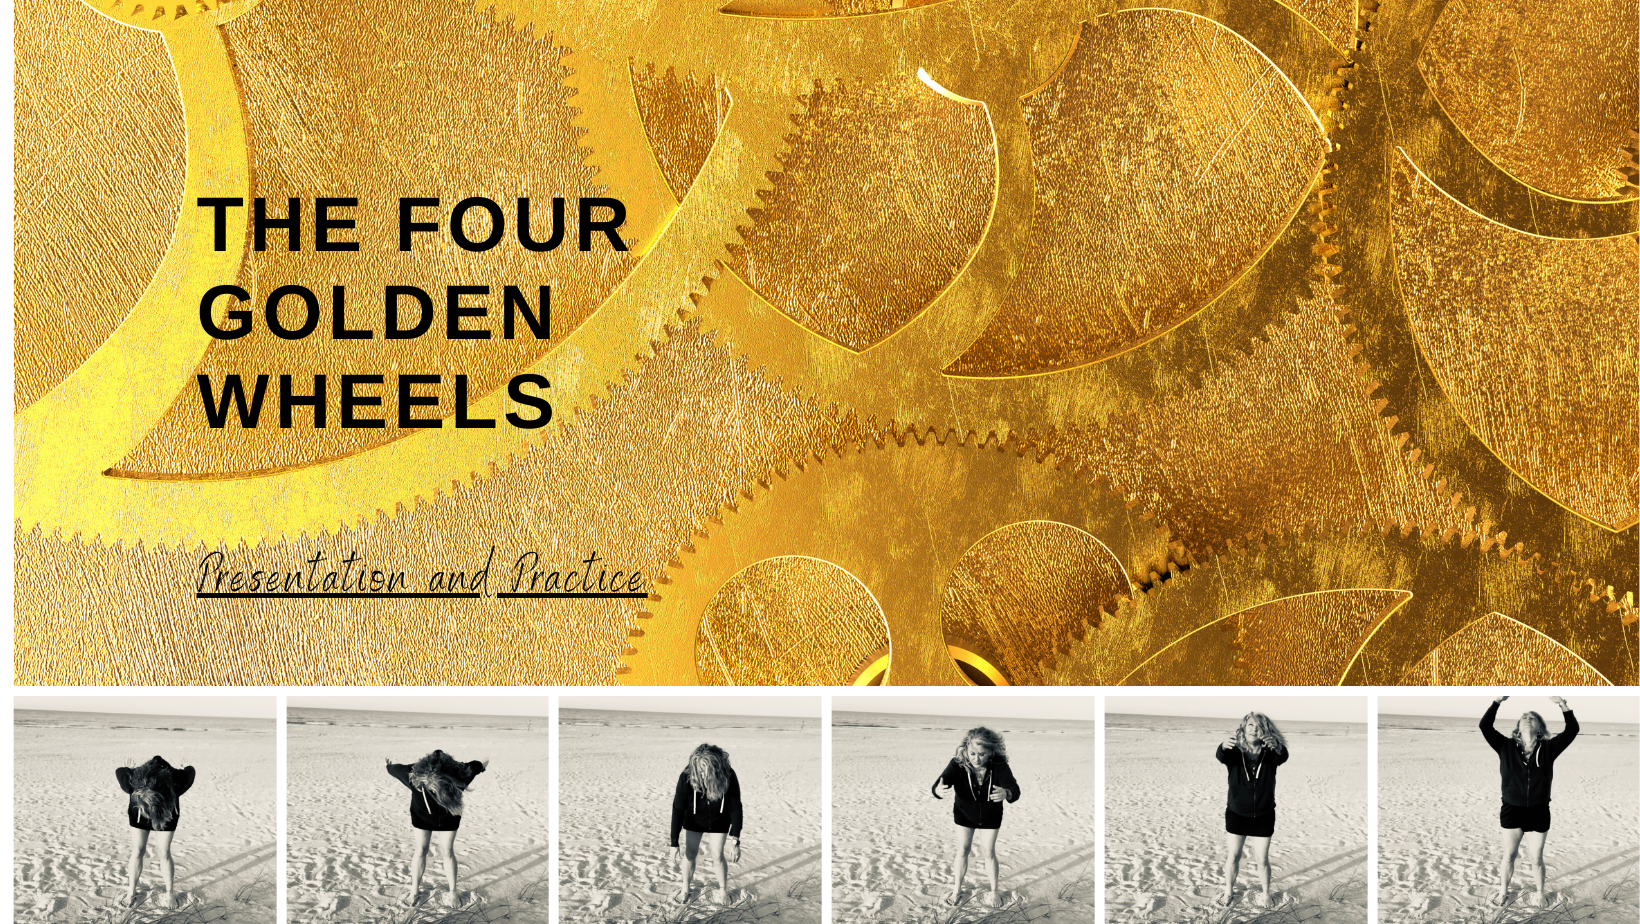 The Four Golden Wheels (1)